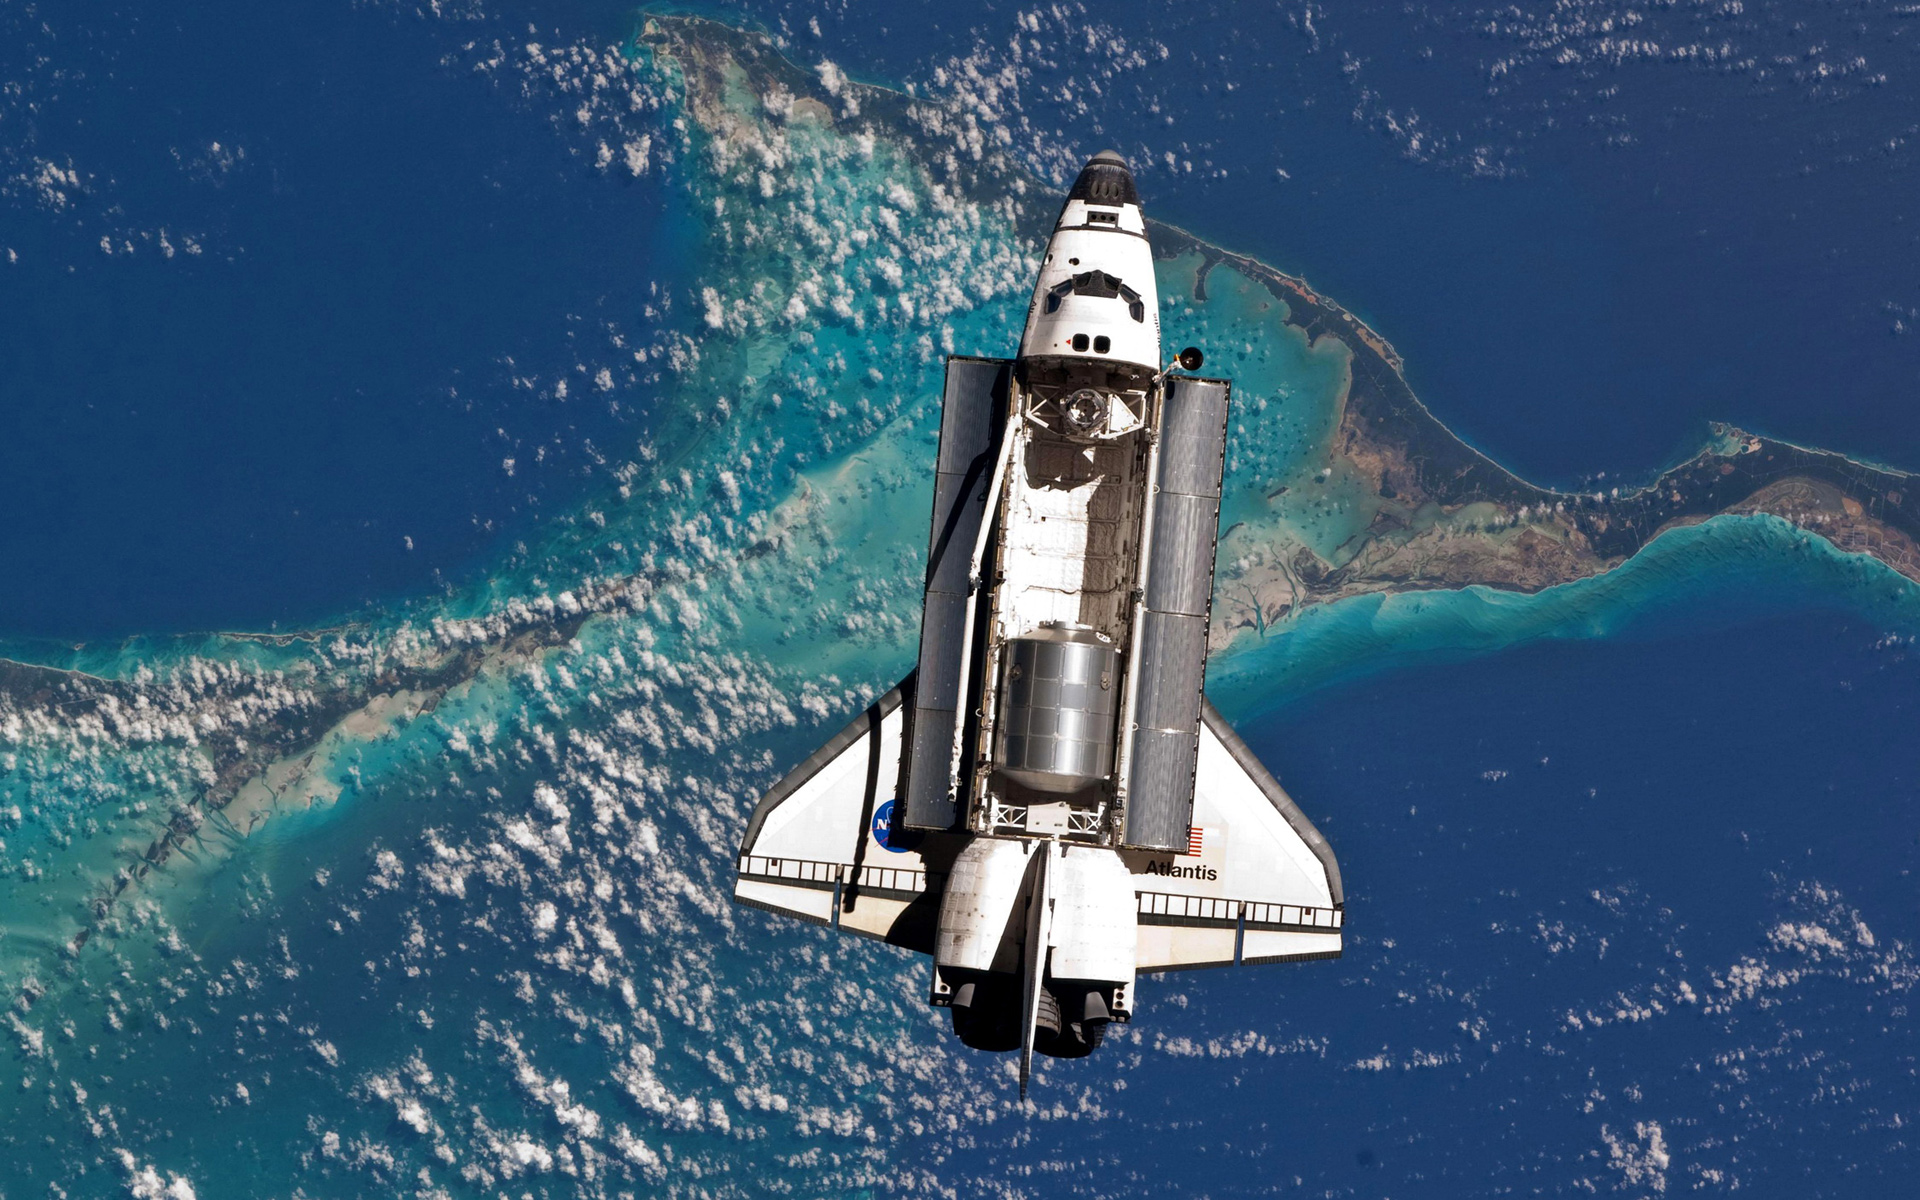 1920x1200 - Space Shuttle atlantis Wallpapers 31